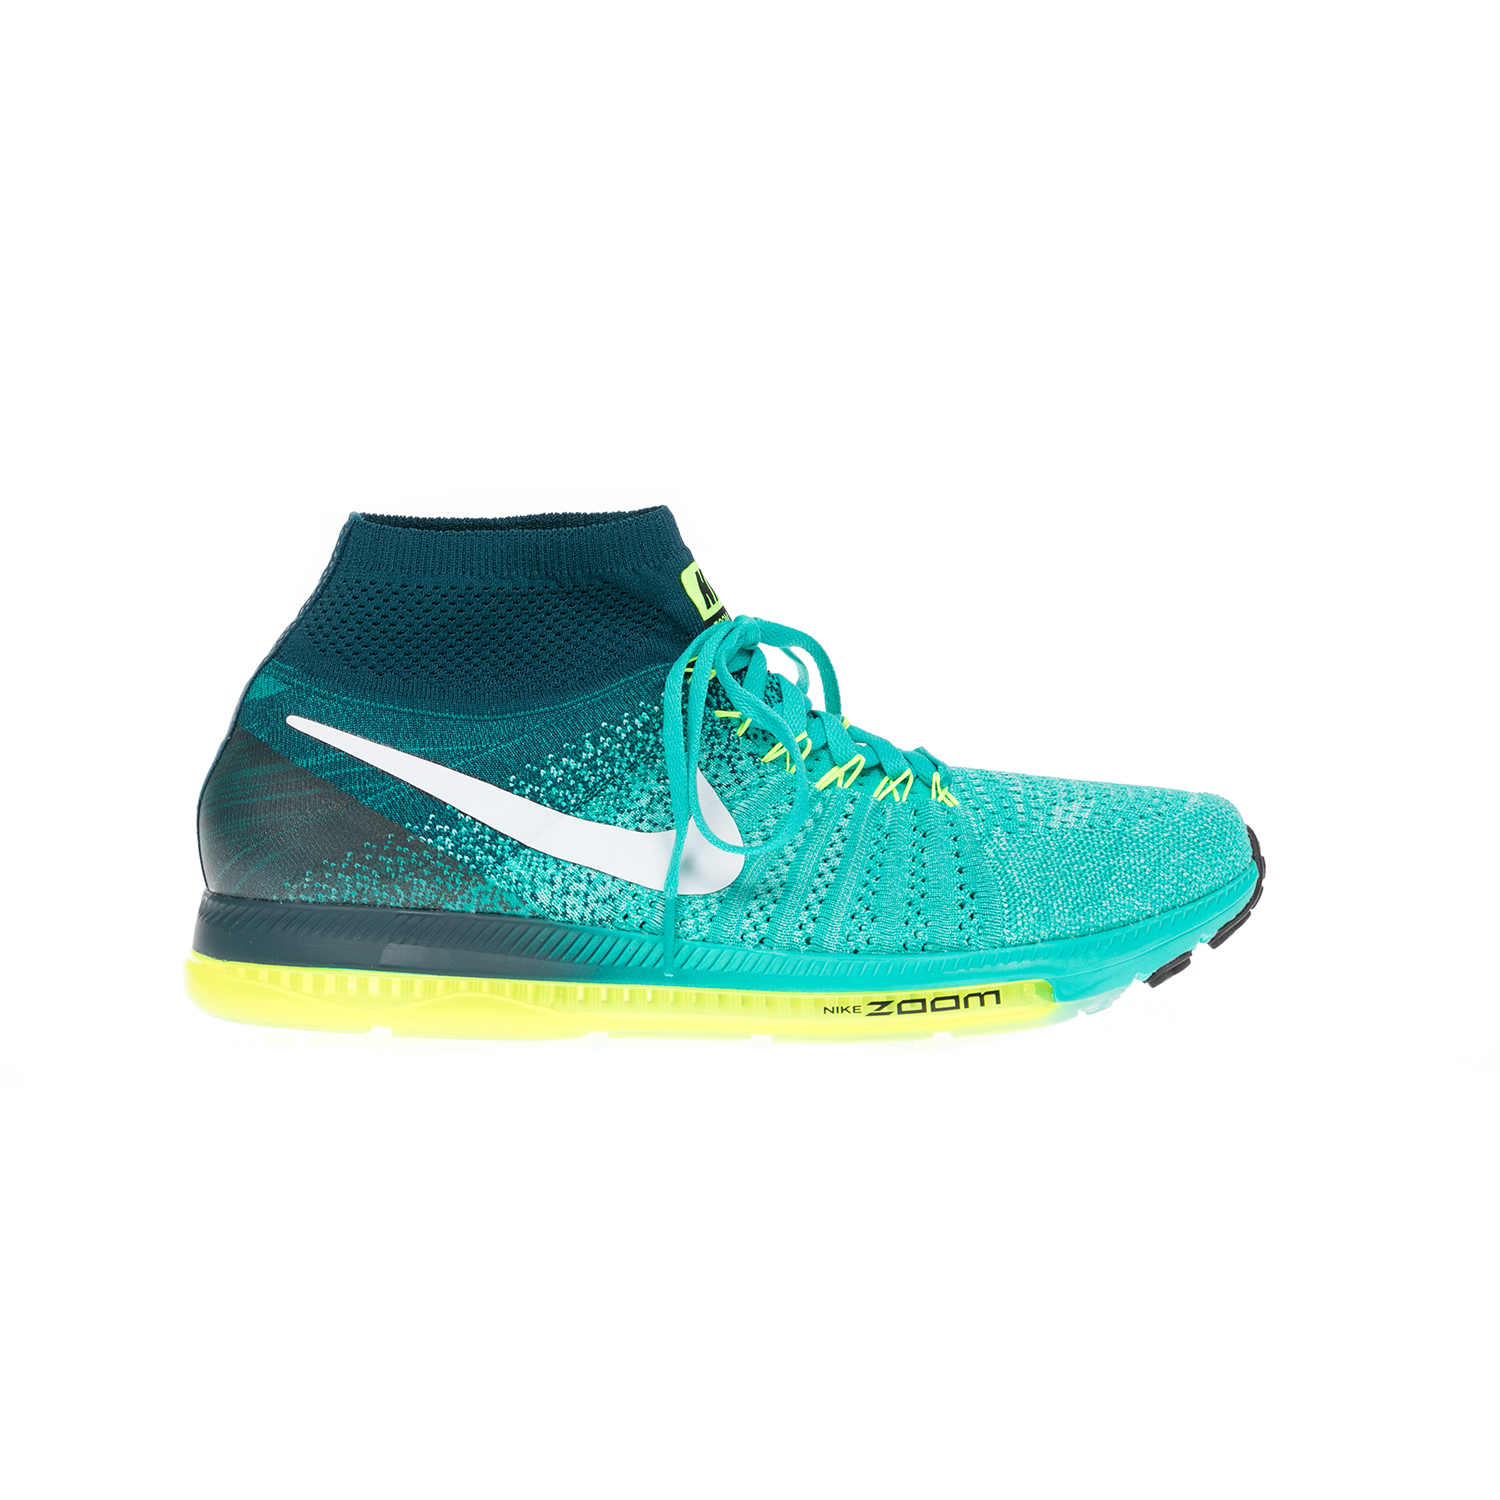 NIKE – Ανδρικά παπούτσια NIKE ZOOM ALL OUT FLYKNIT πράσινα